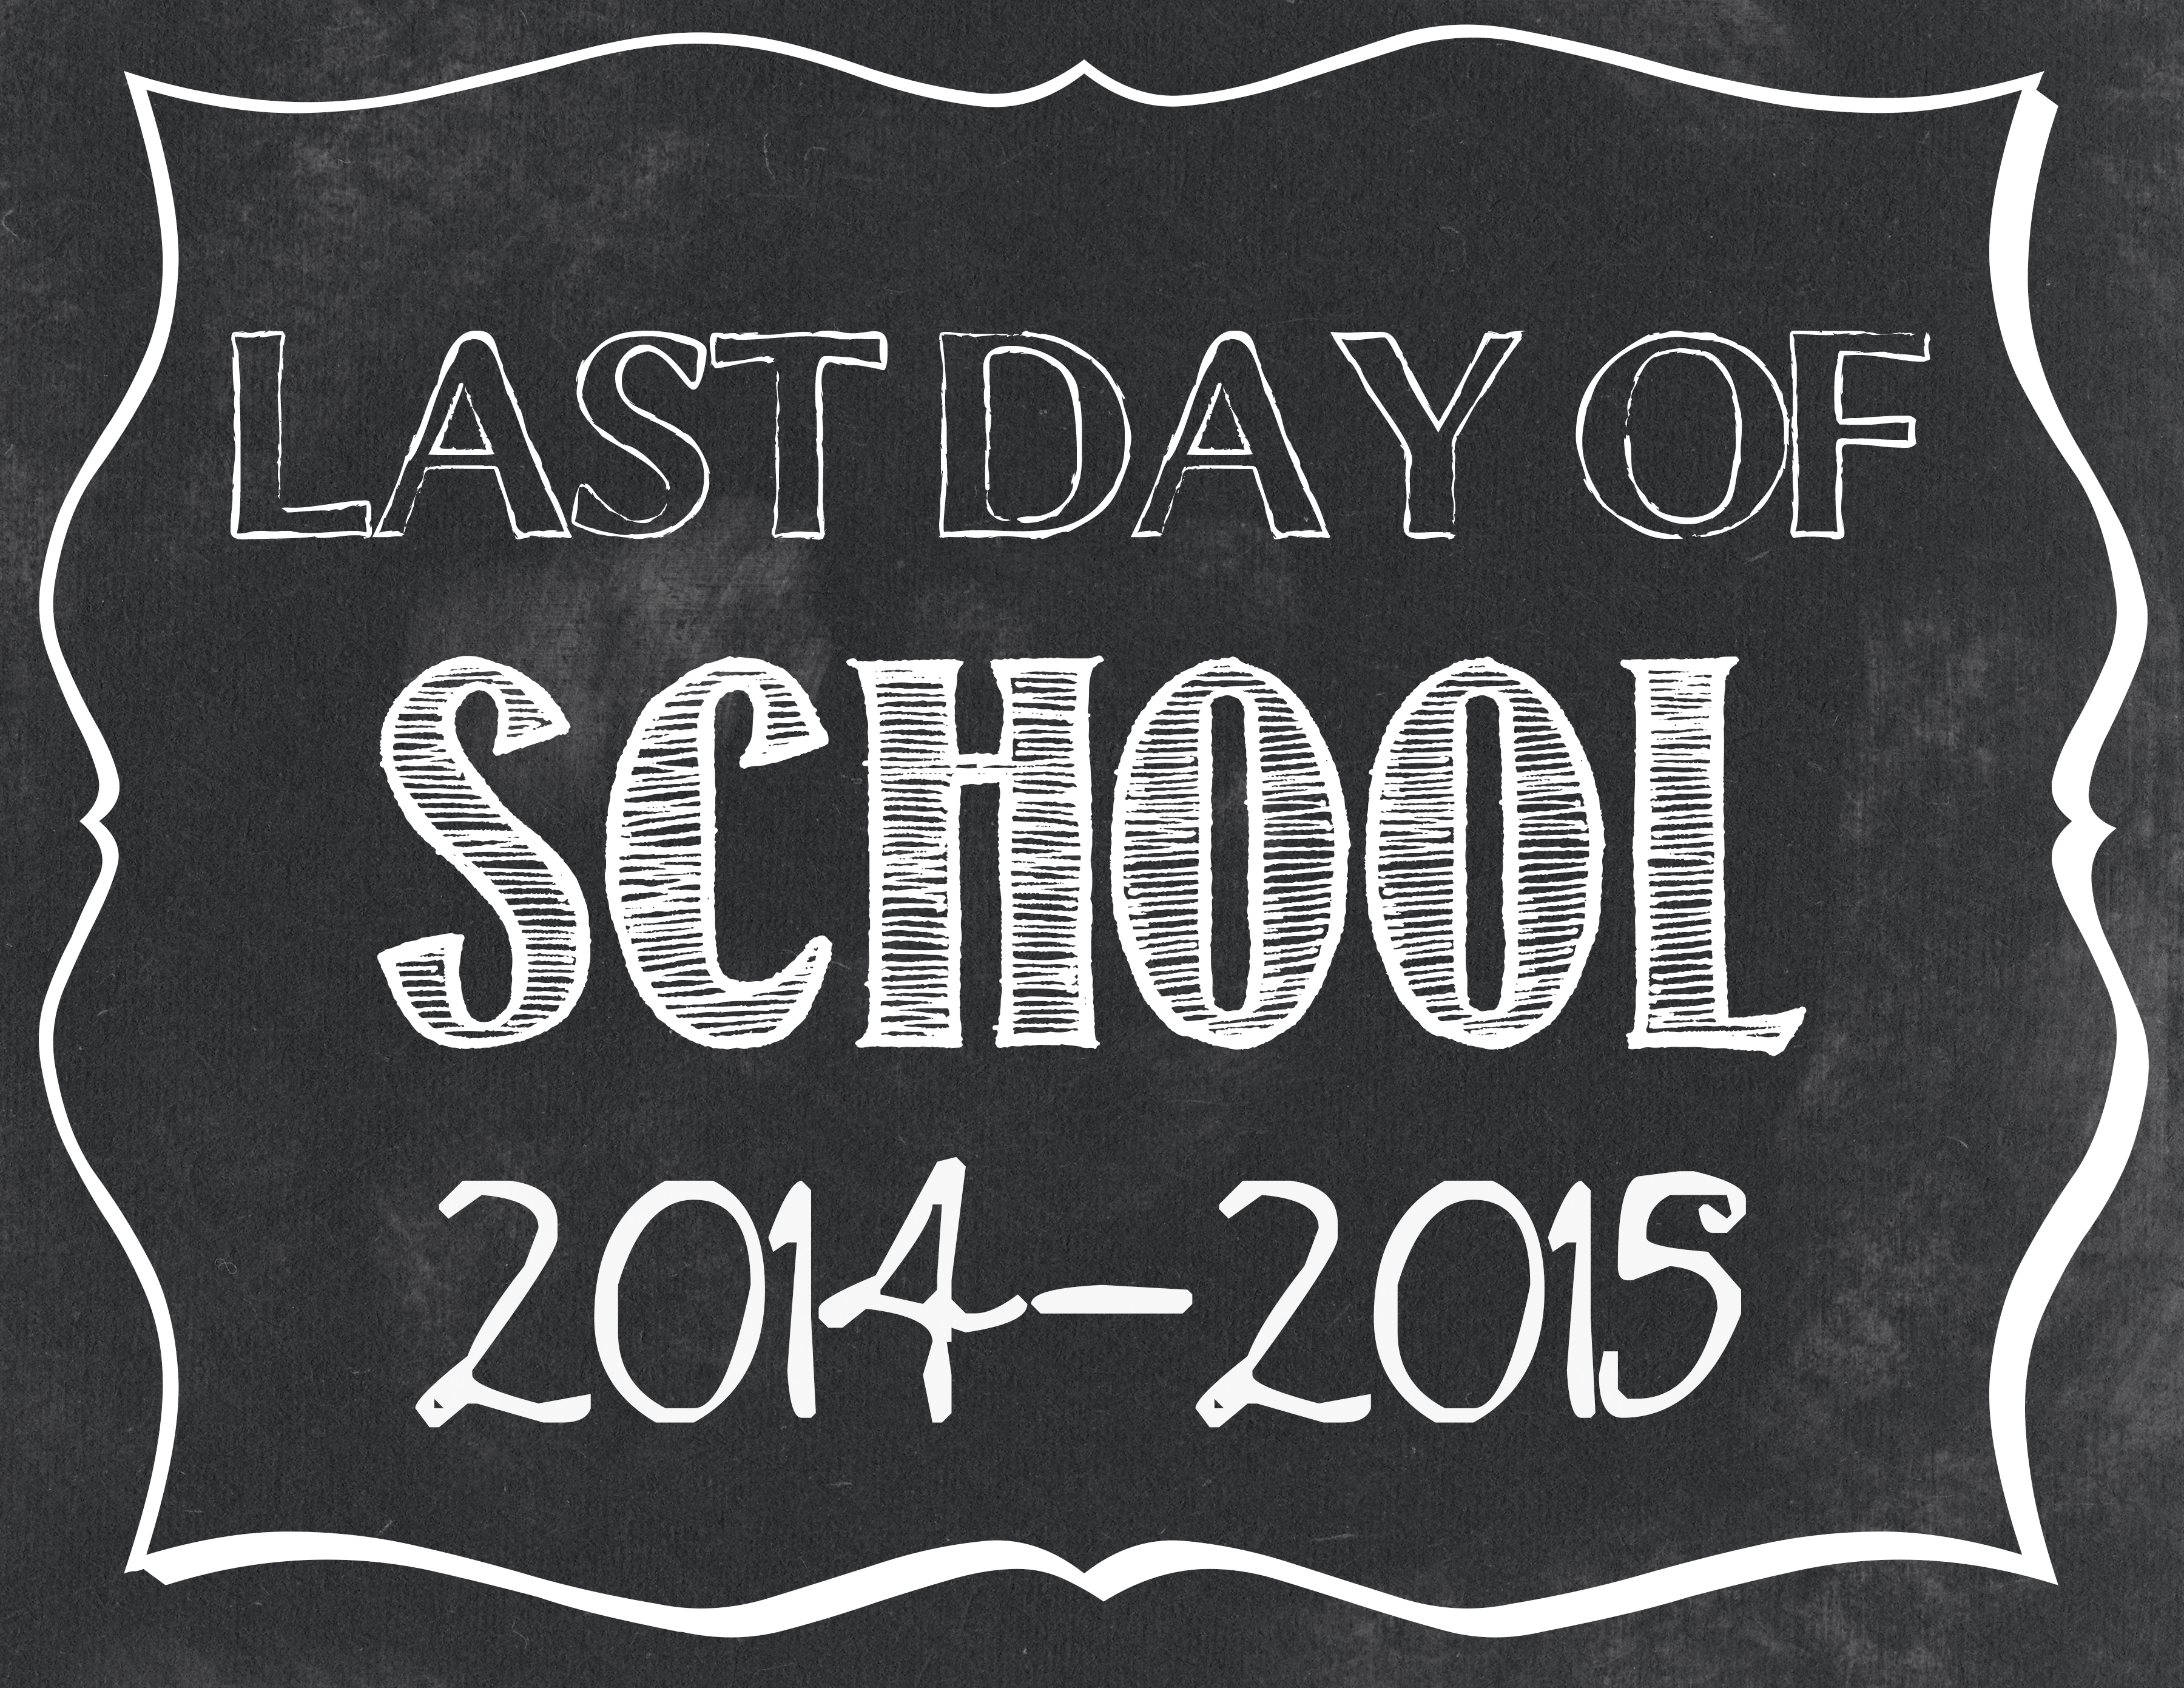 image relating to Last Day of School Printable known as Previous Working day of University No cost Printables - Cly Muddle